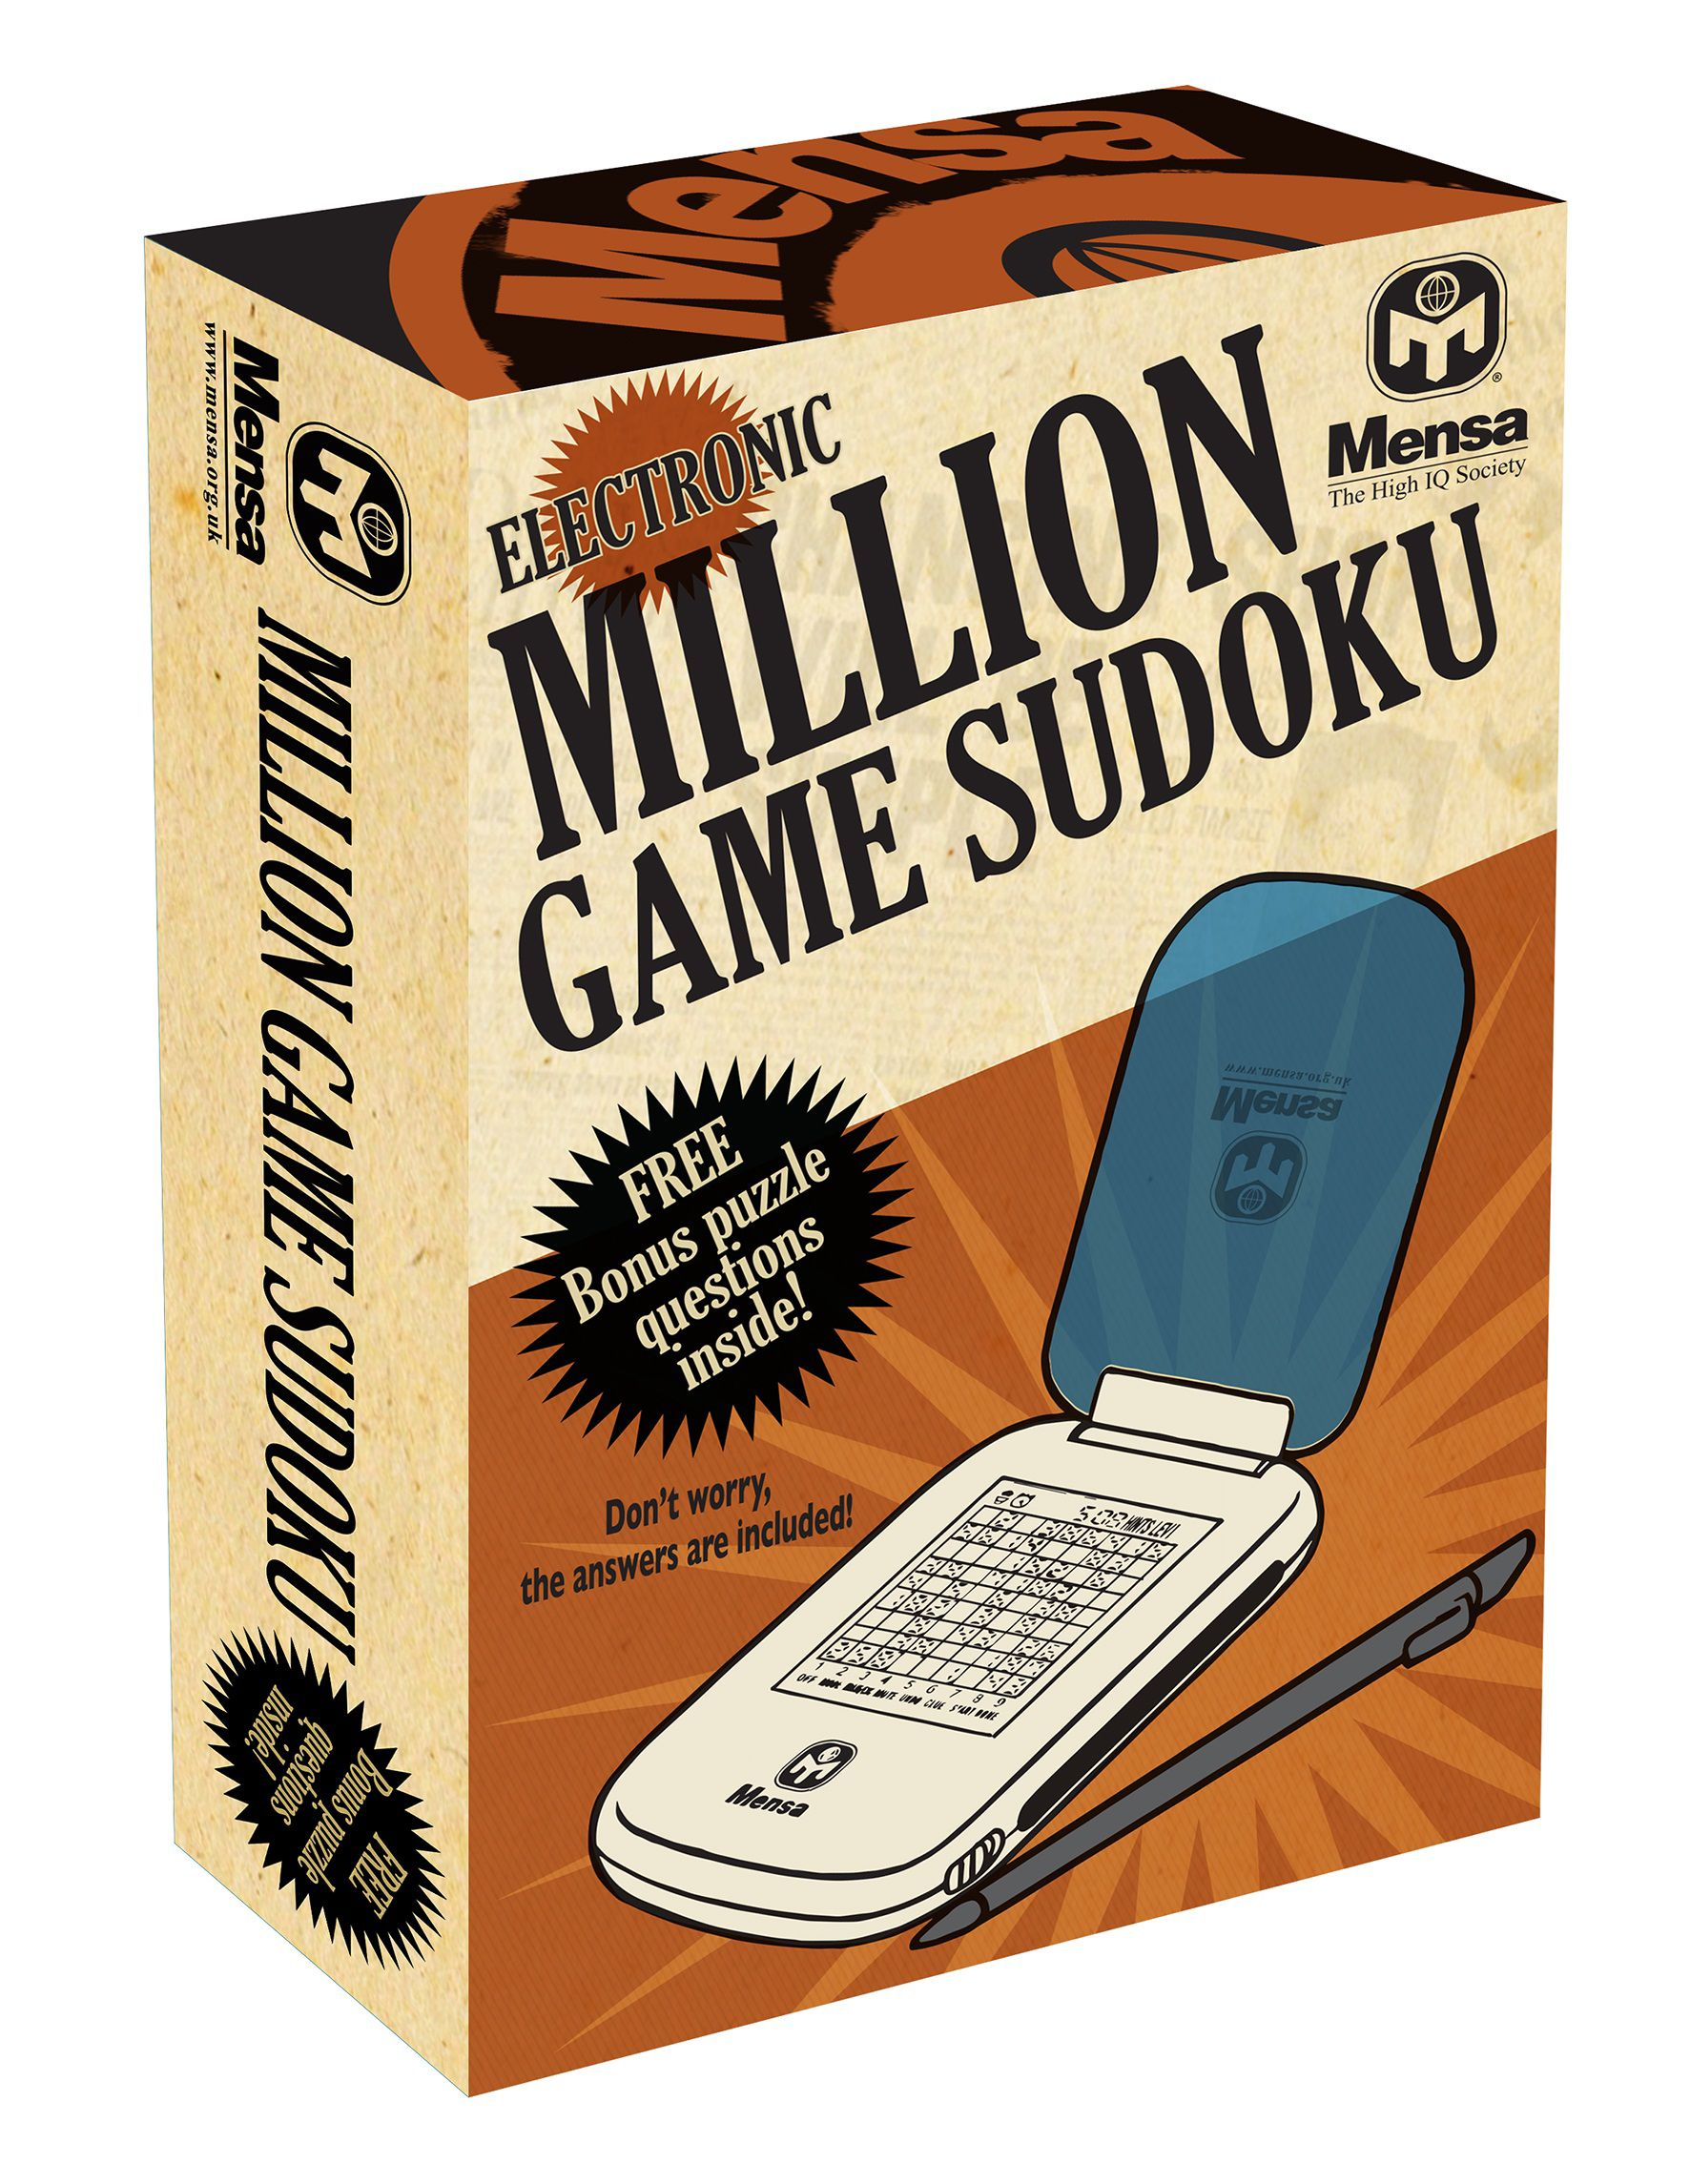 1 million games suduko